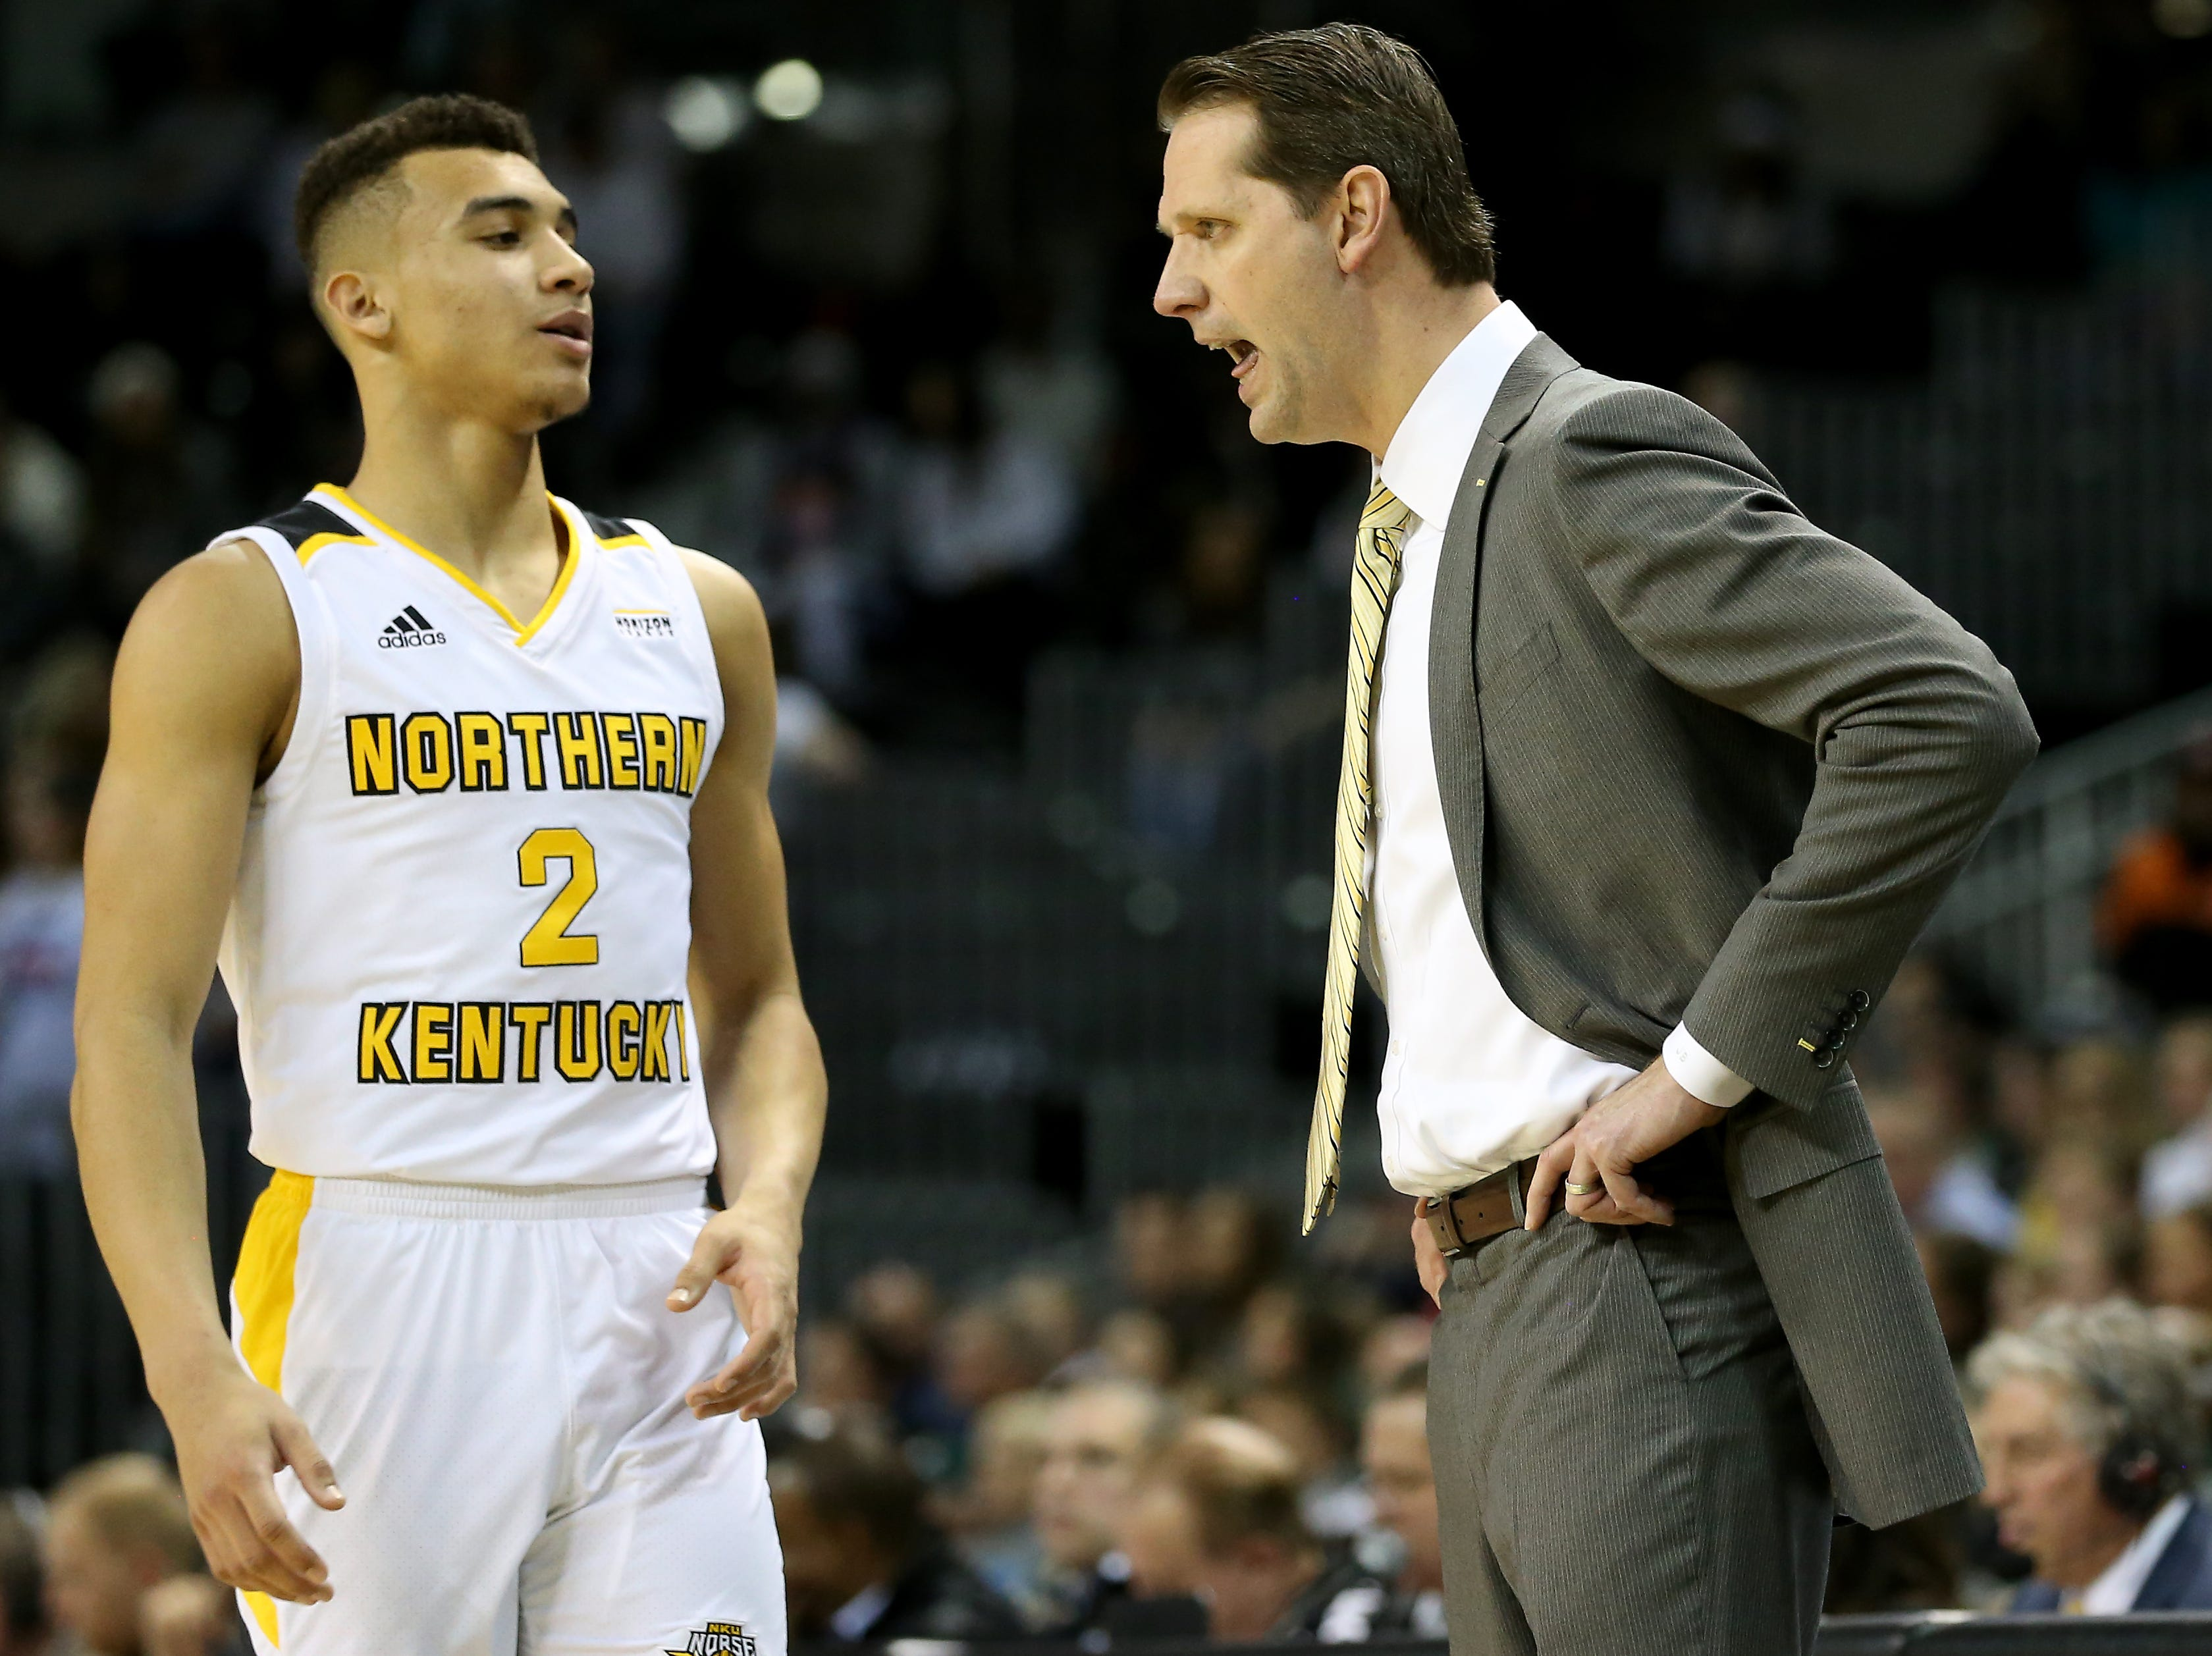 Northern Kentucky Norse head coach John Brannen gets in the ear of Northern Kentucky Norse guard Paul Djoko (2) in the second half of an NCAA basketball game against the Wright State Raiders, Friday, Jan. 11, 2019, at BB&T Arena in Highland Heights, Ky.